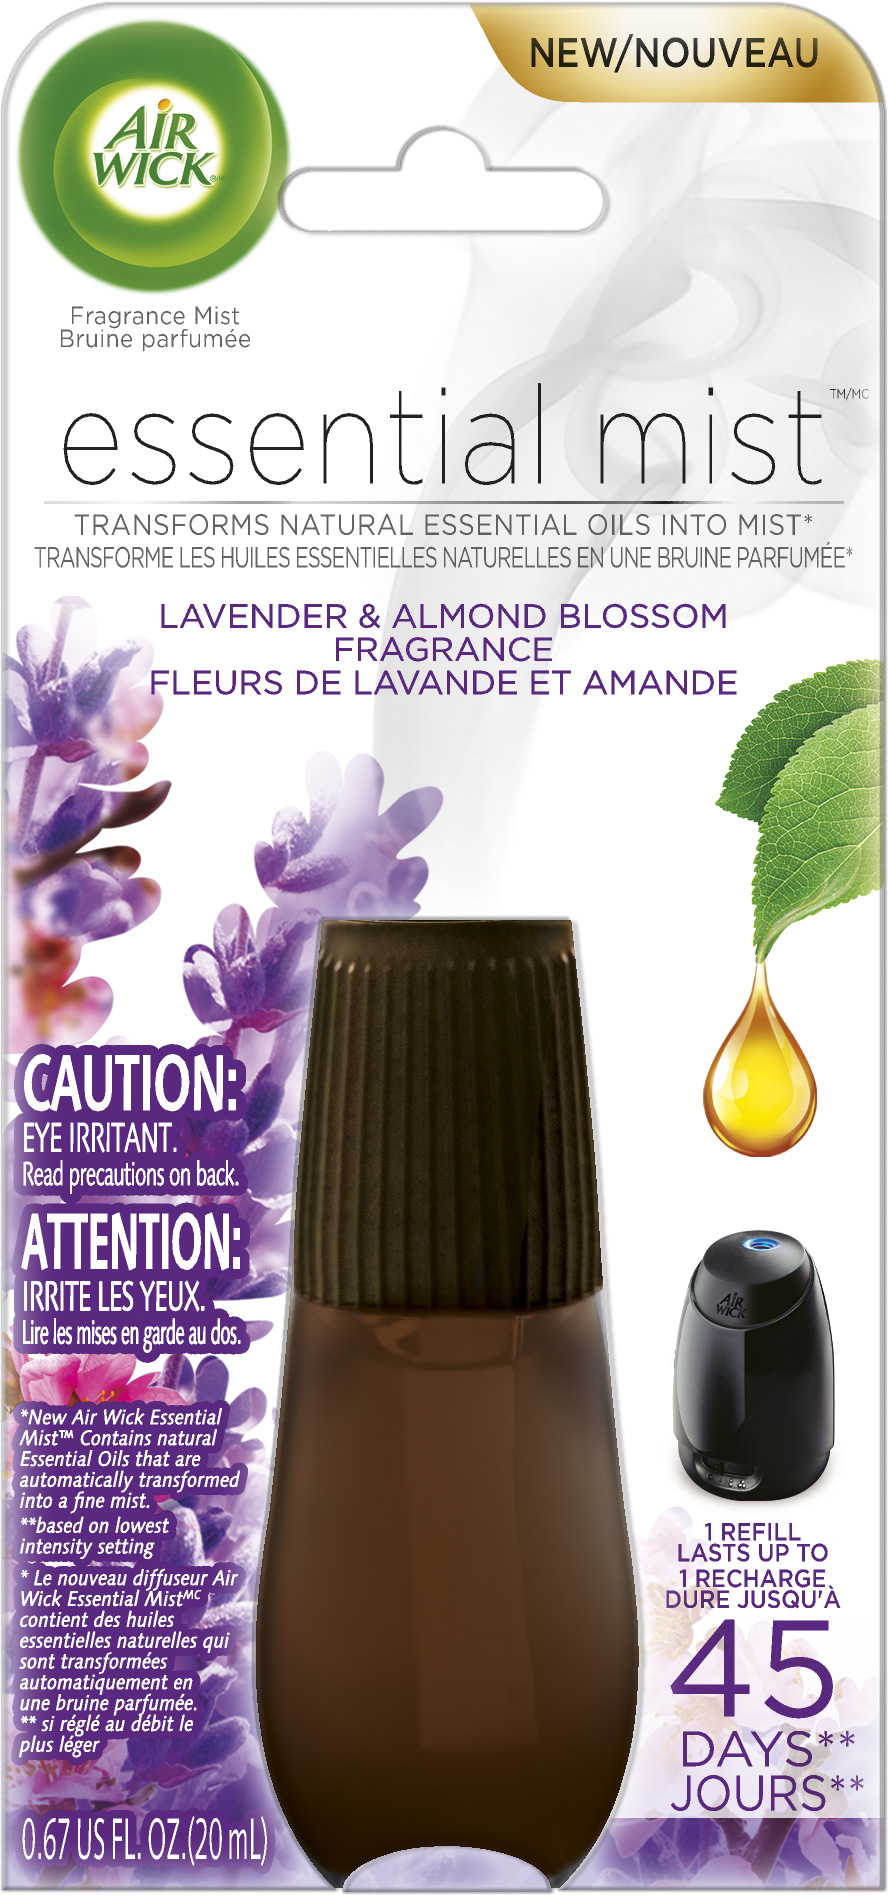 AIR WICK® Essential Mist - Lavender and Almond Blossom (Canada)